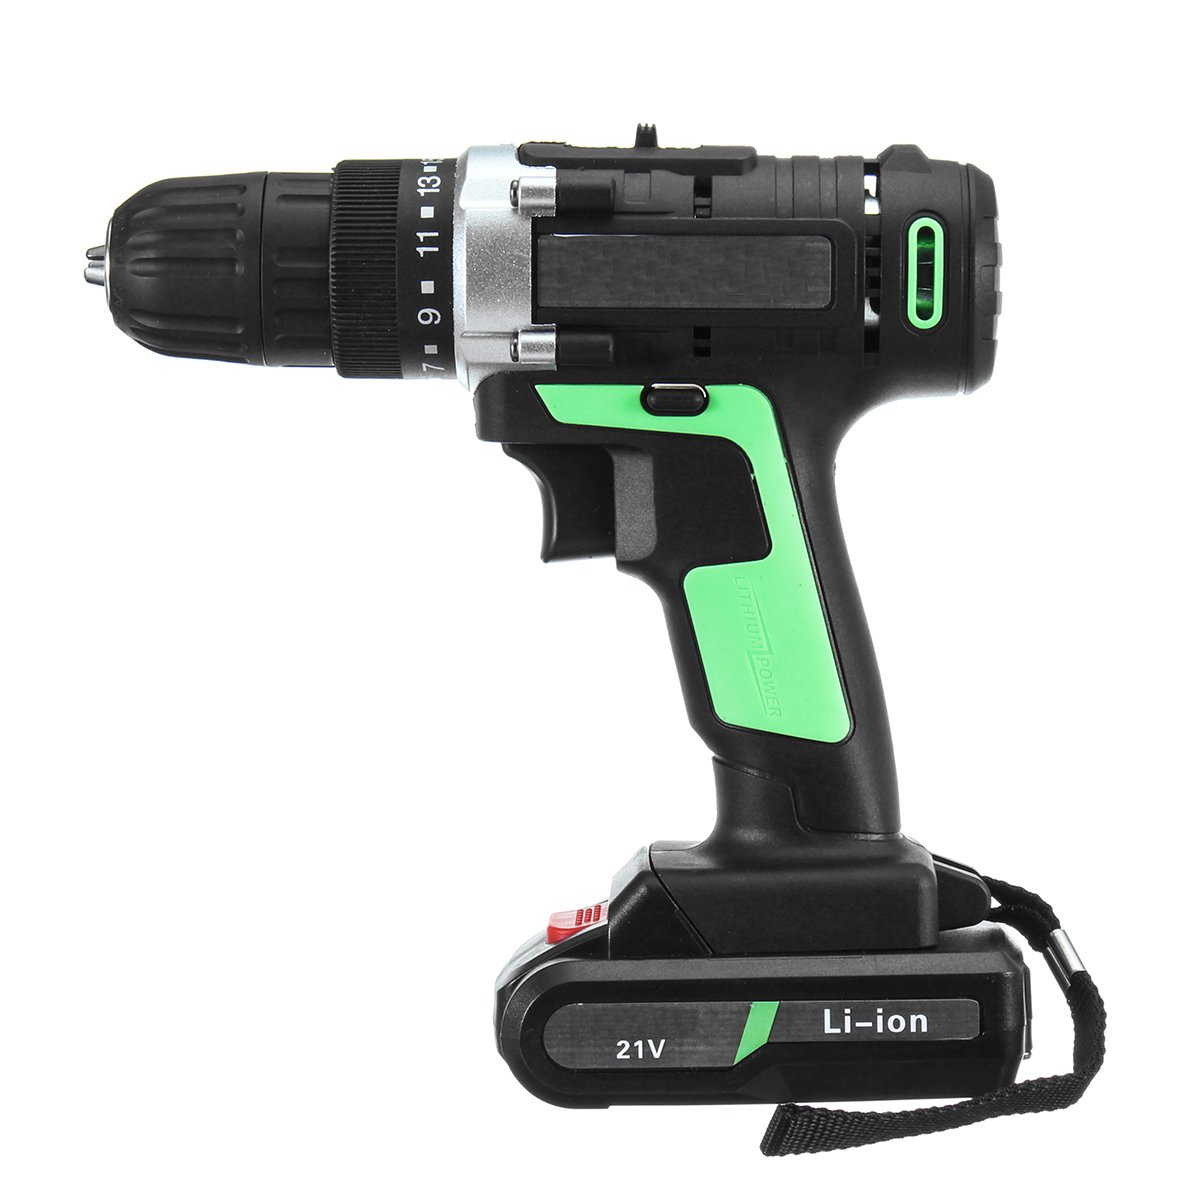 21V additional lithium-ion Battery Cordless Electric hand Drill driver Wrench hole electrical Drill power tools 1 2 li ion 58v 4 8ah 2800r min lithium battery socket wrench electric impact wrench car tyre wheel cordless wrench drill